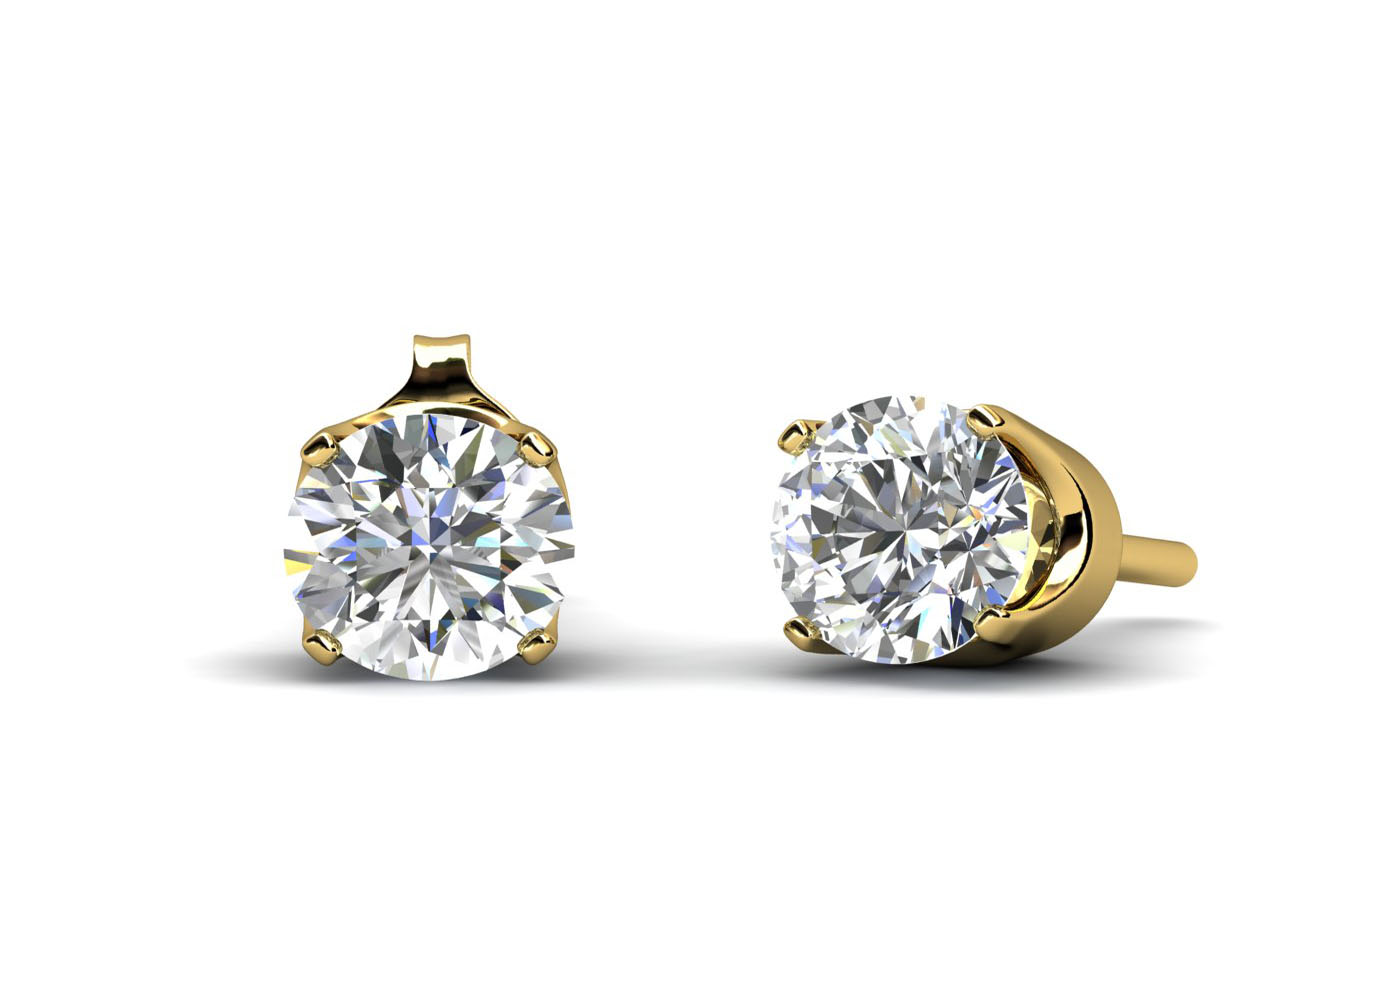 9ct Yellow Gold Claw Set Diamond Earrings 0.33 Carats - Image 2 of 4